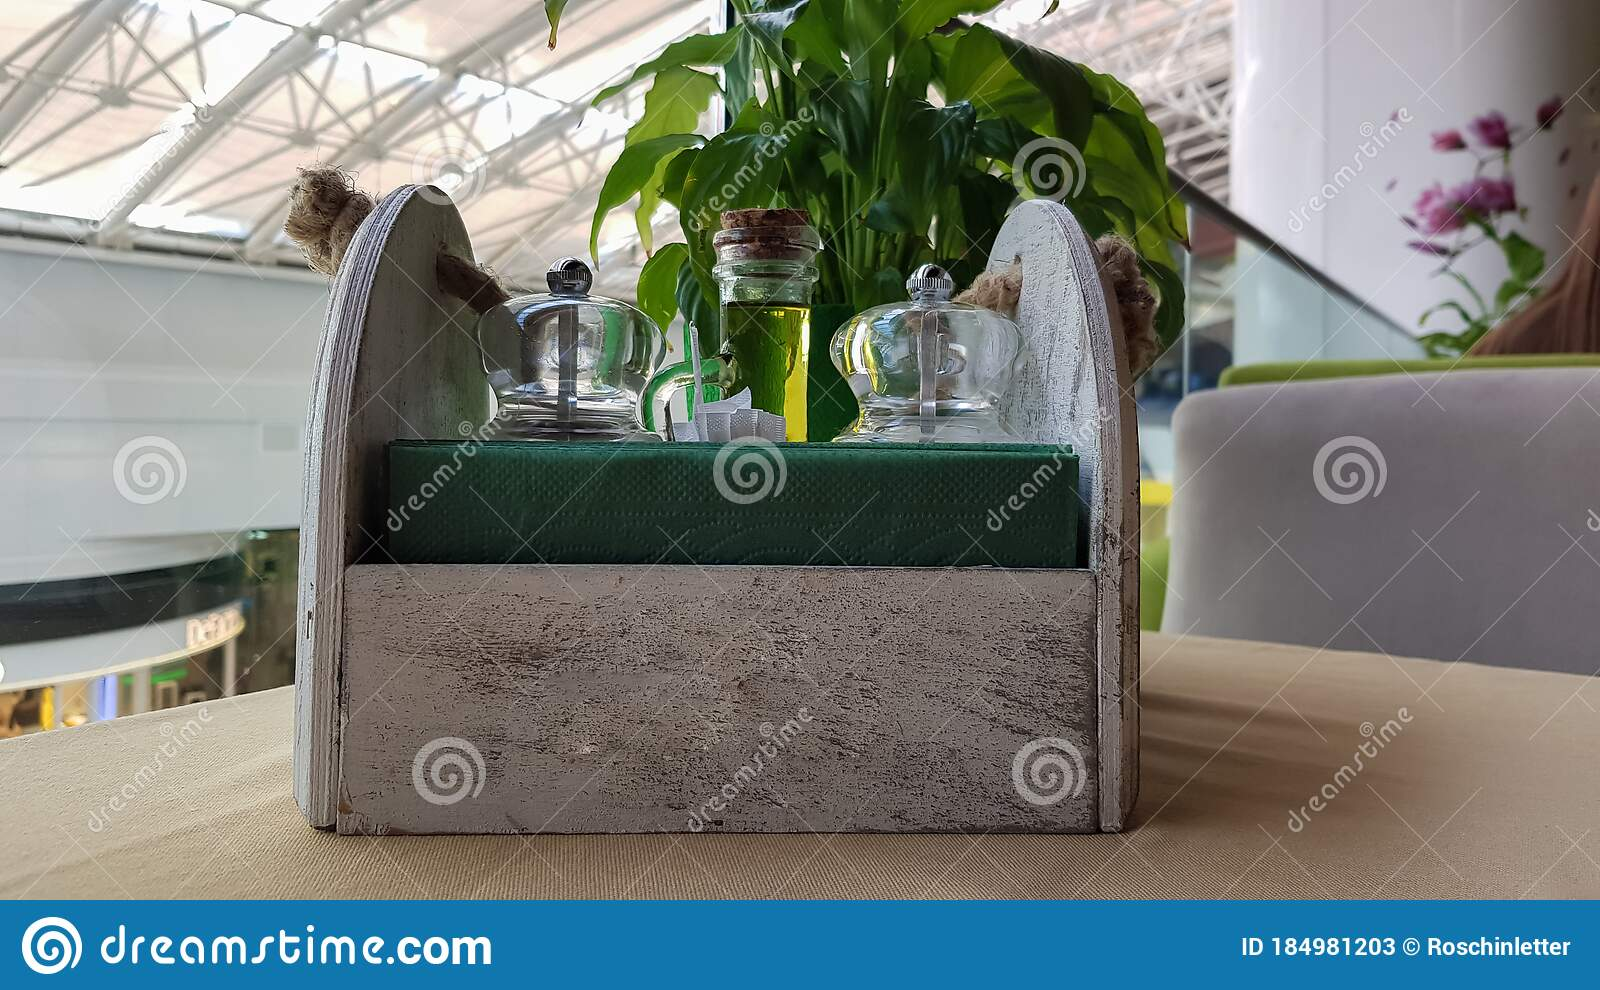 A Table In A Cafe Or Restaurant Napkins In A Wooden Napkin Holder Spices Salt And Pepper Olive Oil And Sauce On The Table Stock Image Image Of Modern Napkins 184981203